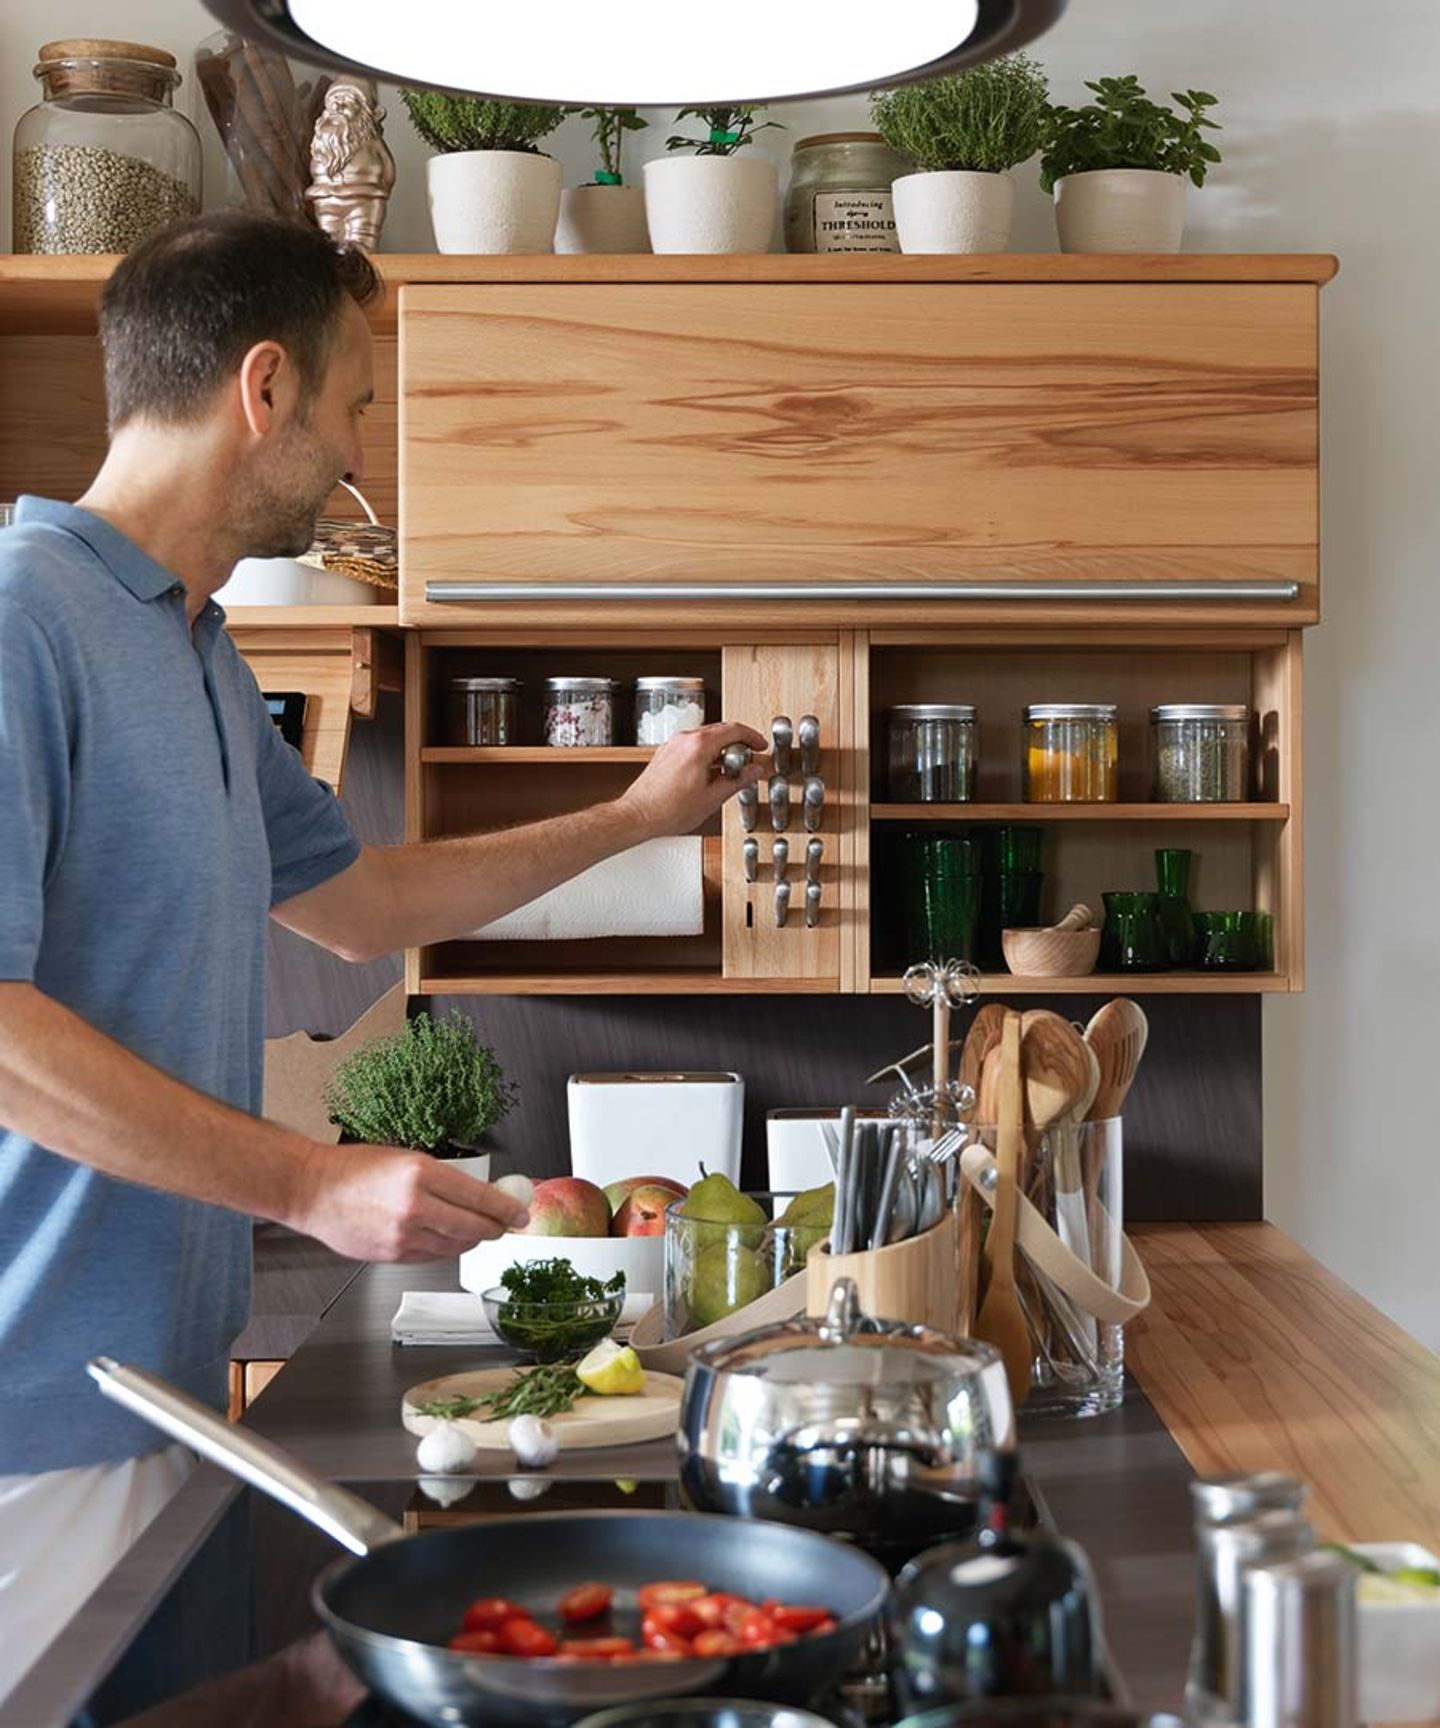 rondo solid wood kitchen with open shelves and cornices